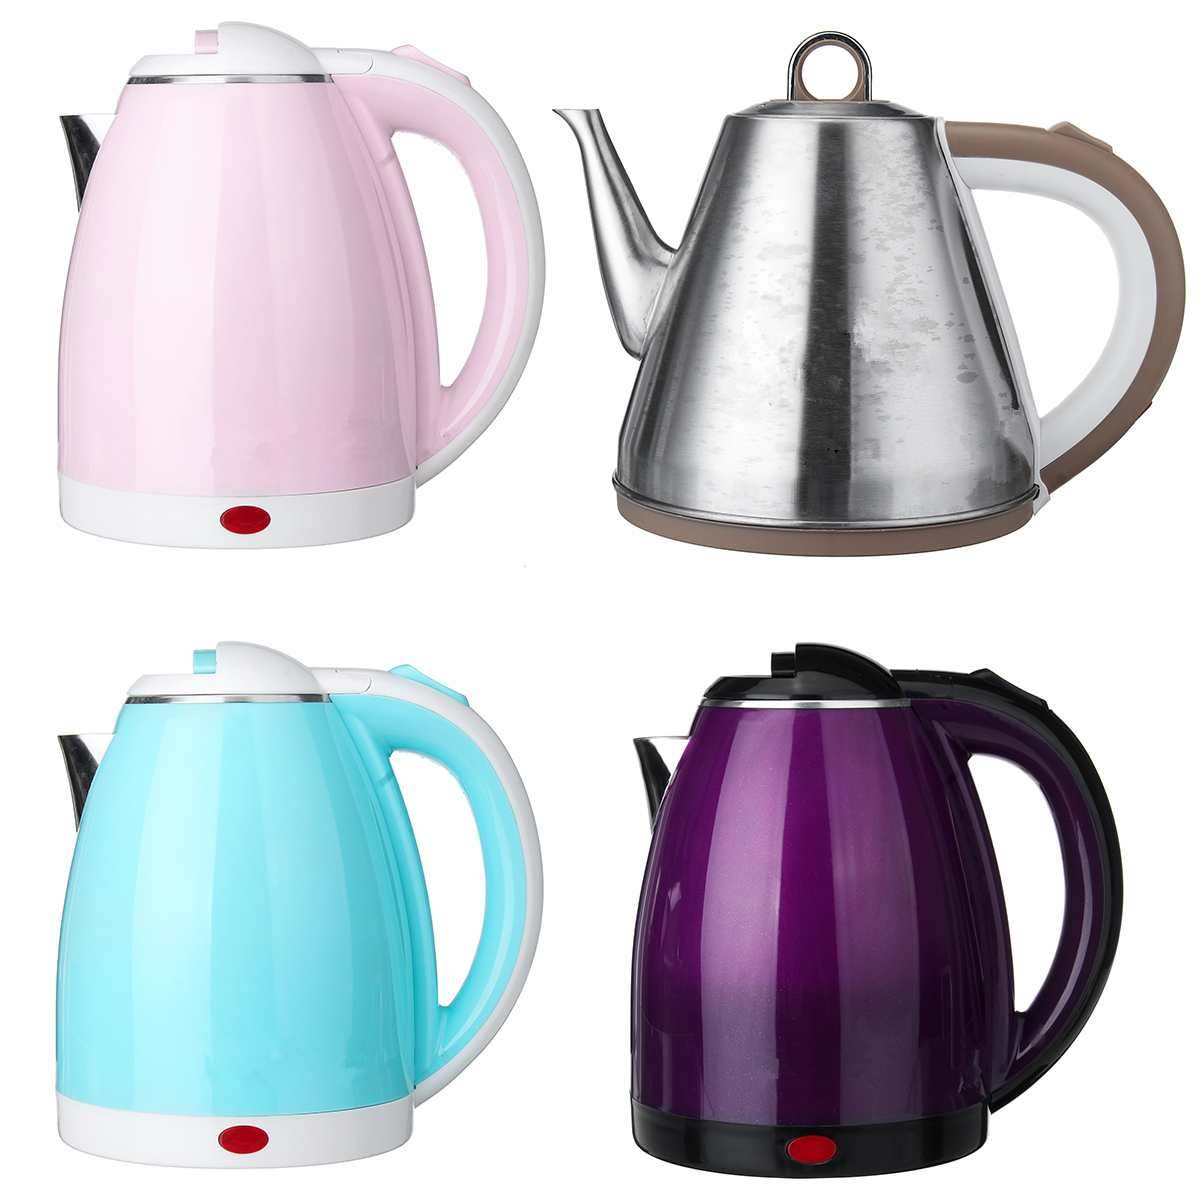 1L Colorful 304 Stainless Steel Electric Kettle 950W Household Cordless 220V Quick Heating Electric Boiling Tea Pot Sonifer